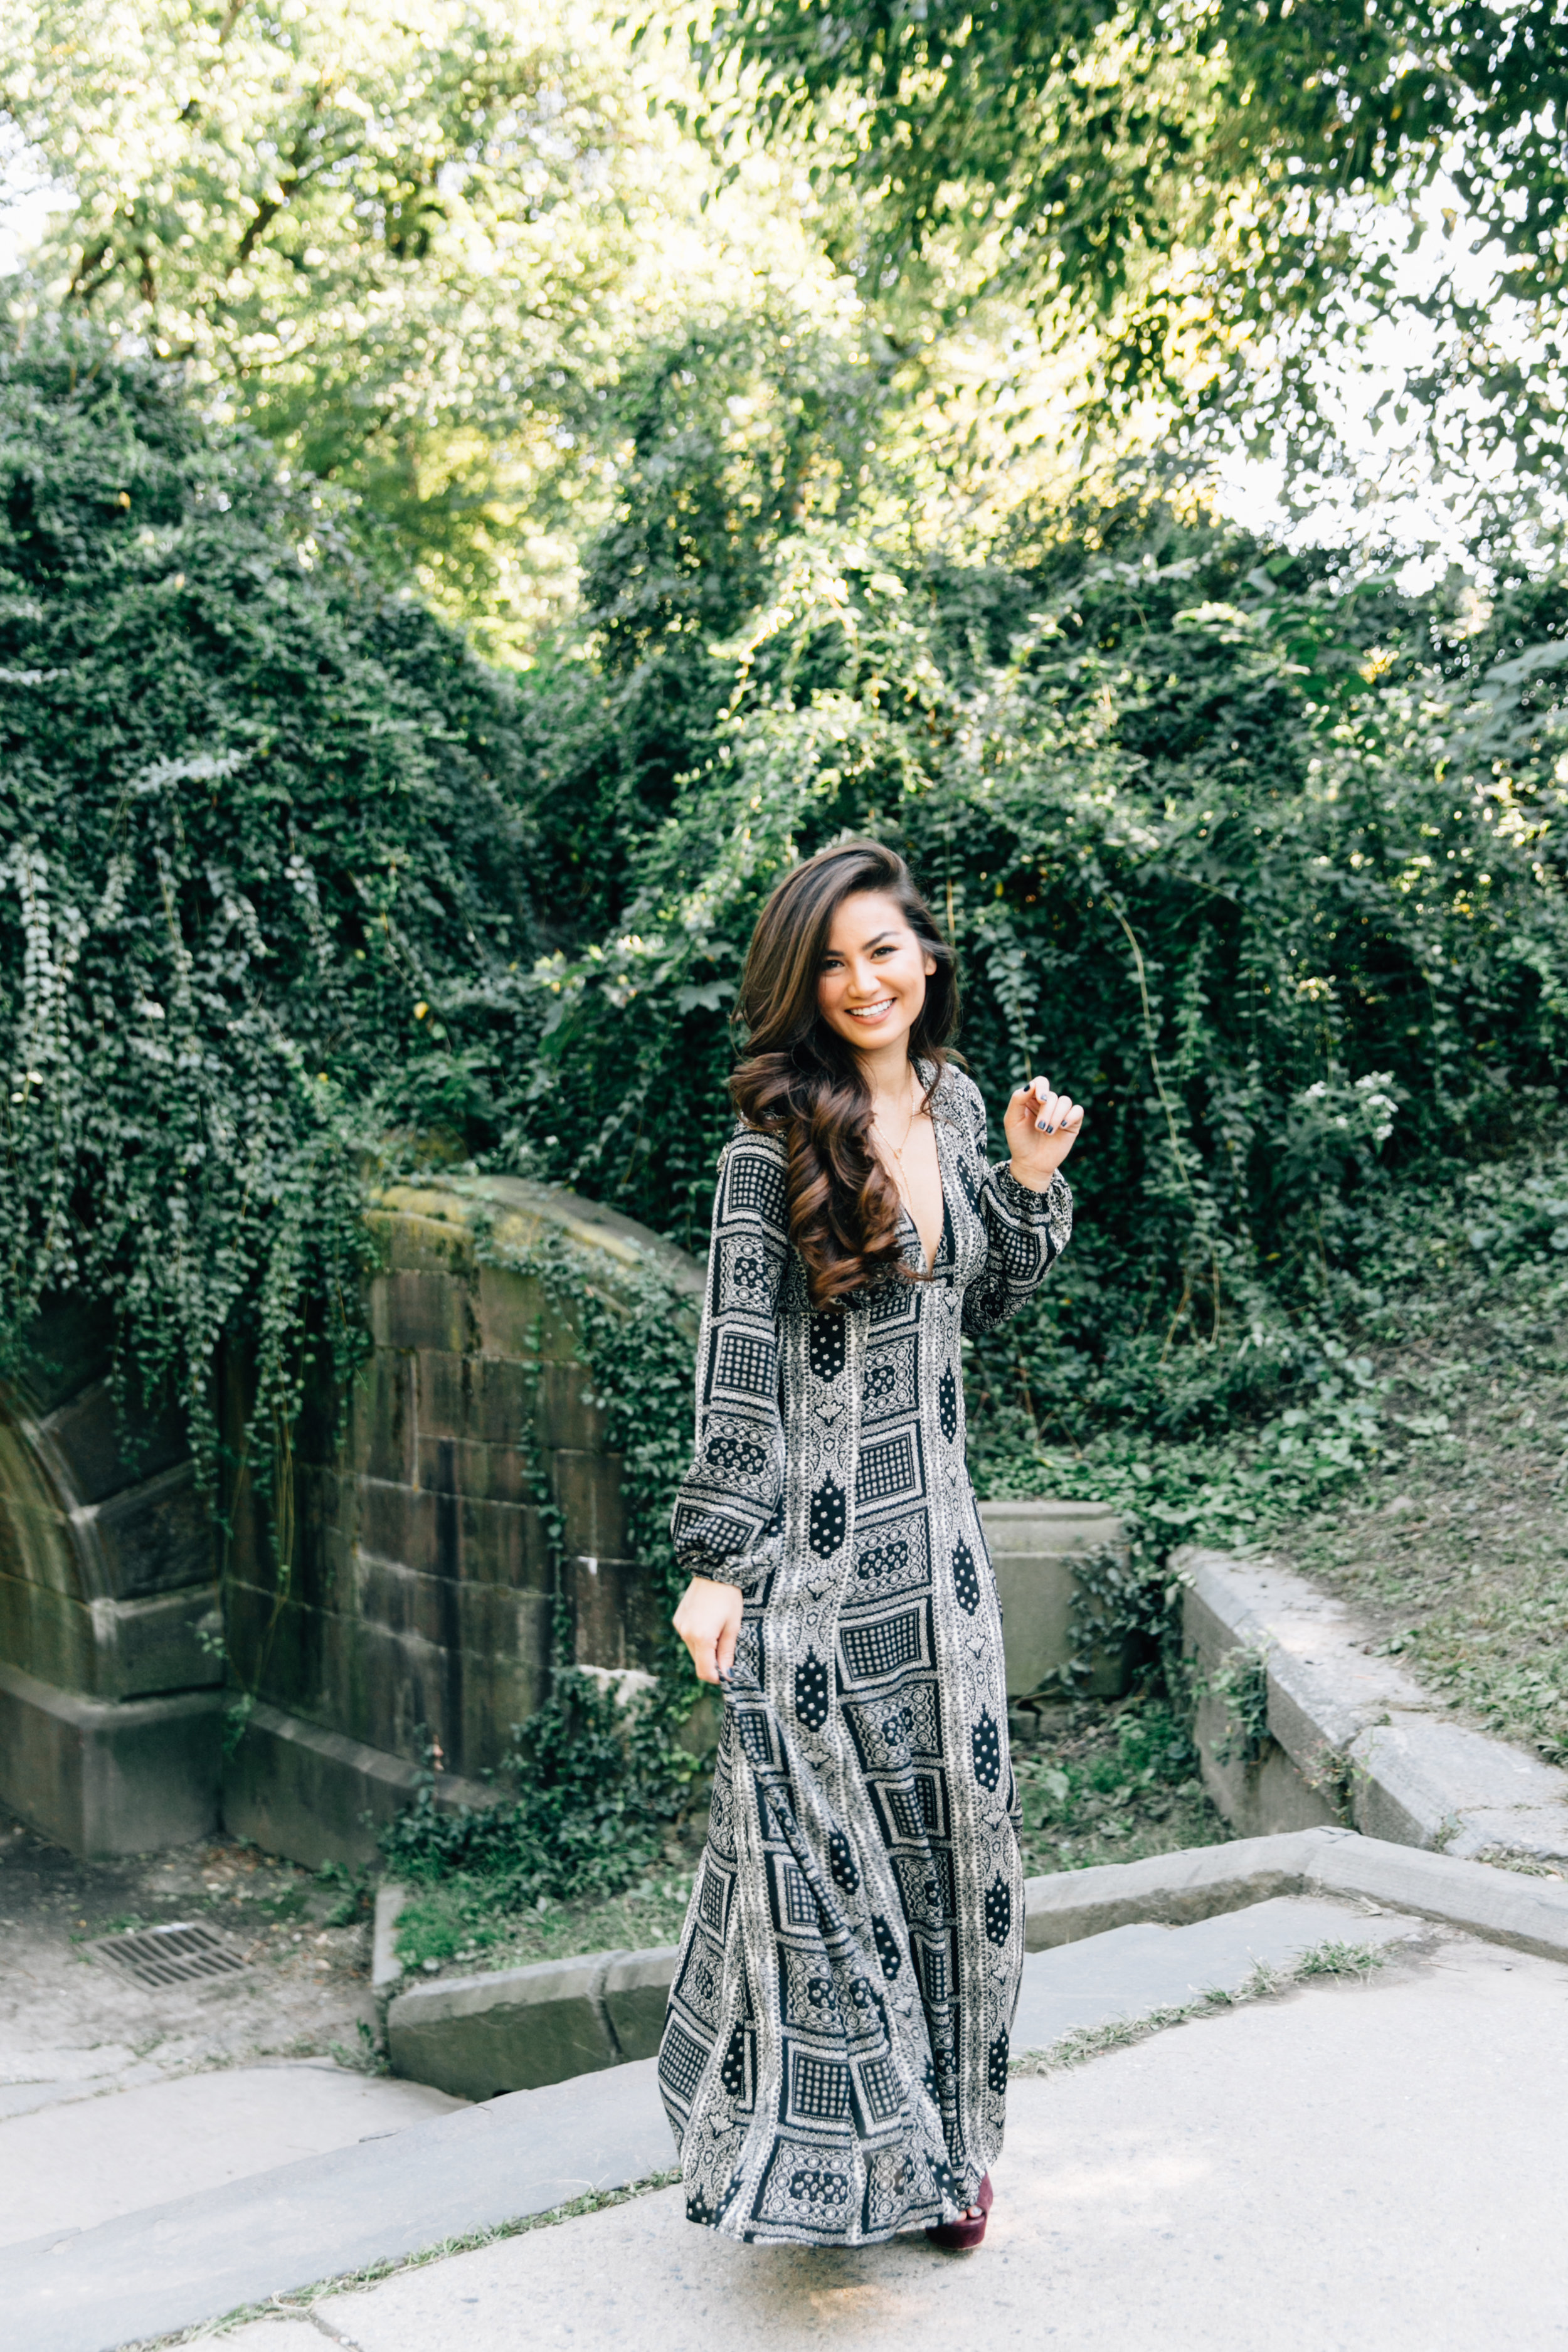 Central Park NYC Dress Caila Quinn Standing